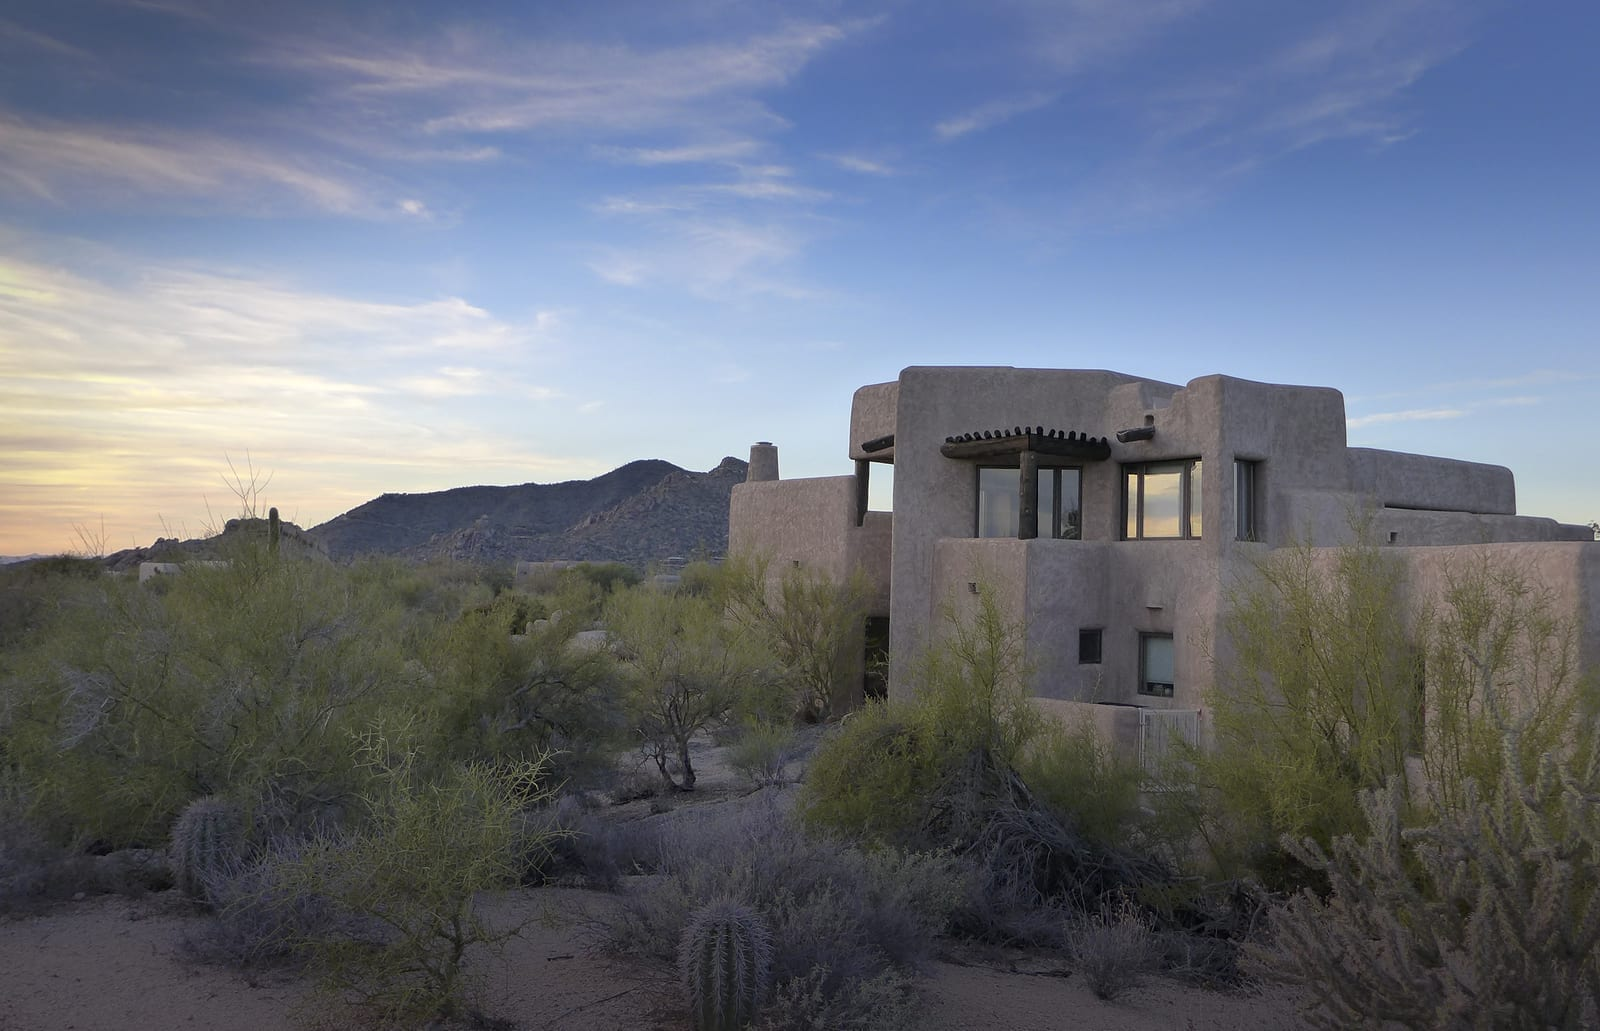 Albuquerque Xeriscaping - Save Money and Add Value to Your Albuquerque Home by R & S Landscaping - Part One